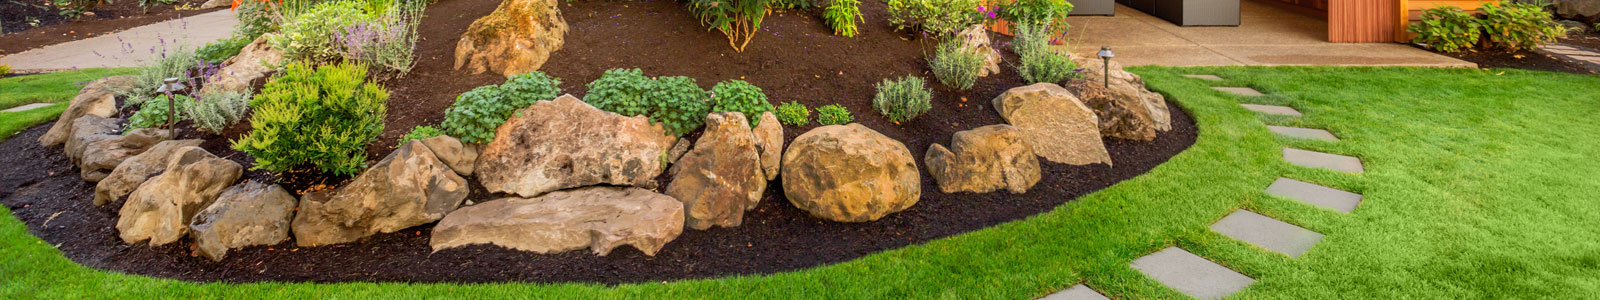 Landscaping Increase Value of Home